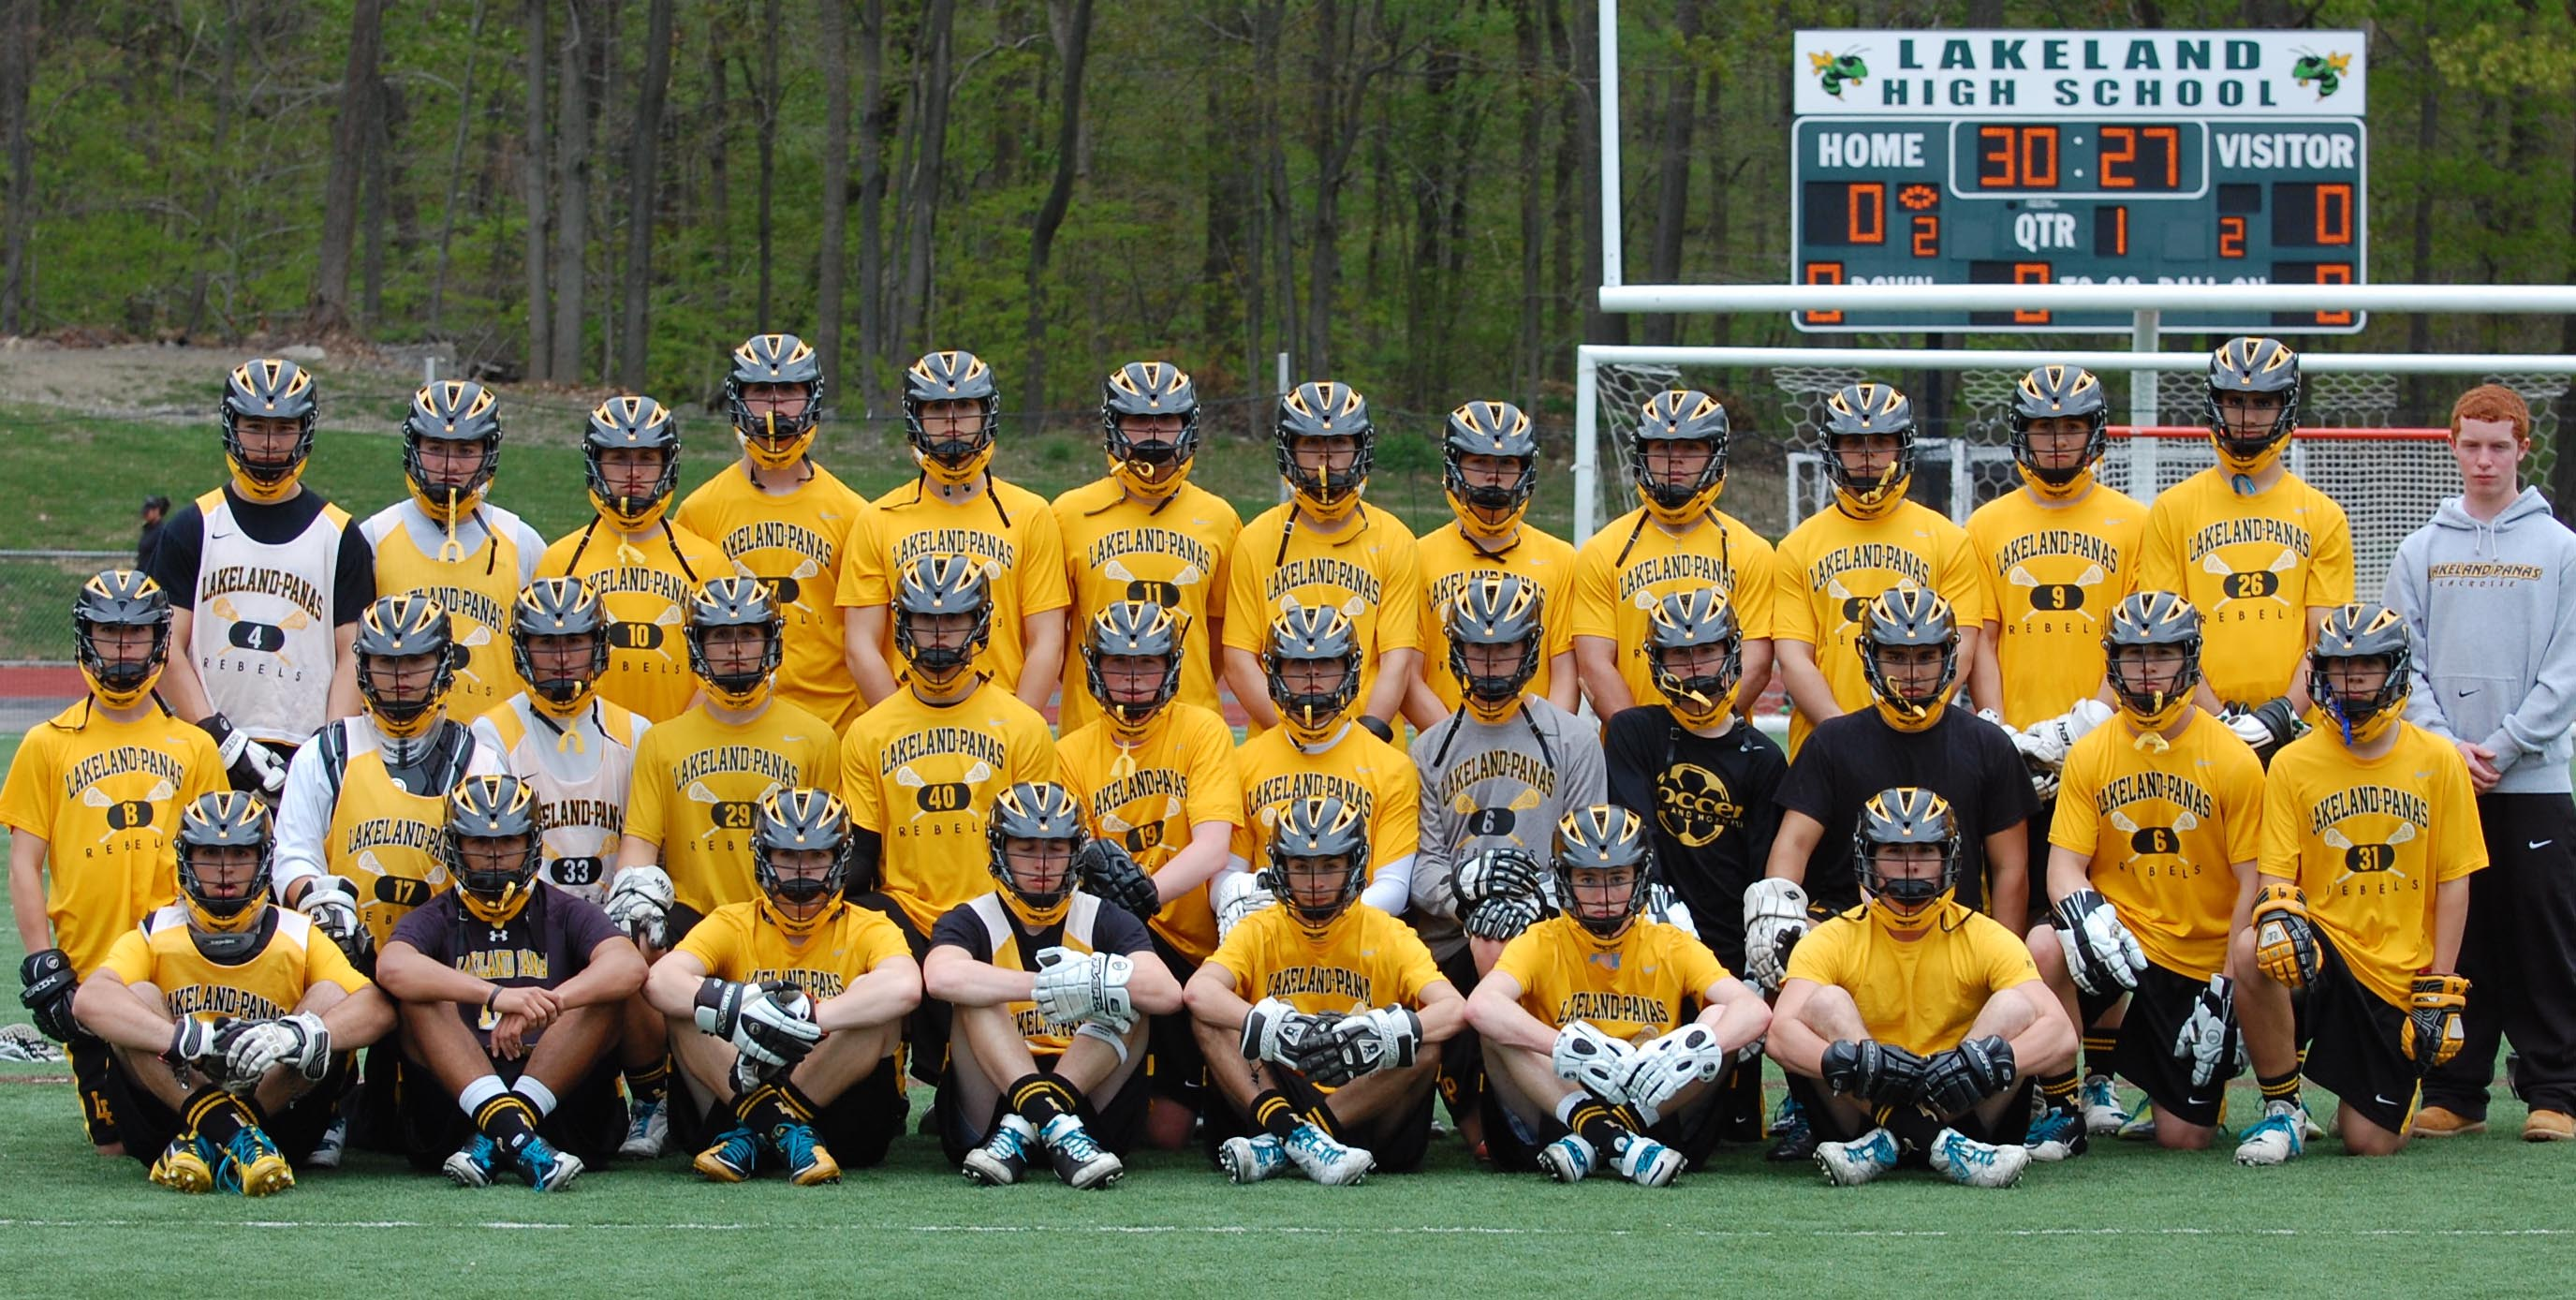 Lakeland and Walter Panas high school lacrosse teams will play a game to benefit the Cheryl R. Lindenbaum Cancer Center at Hudson Valley Hospital Center.